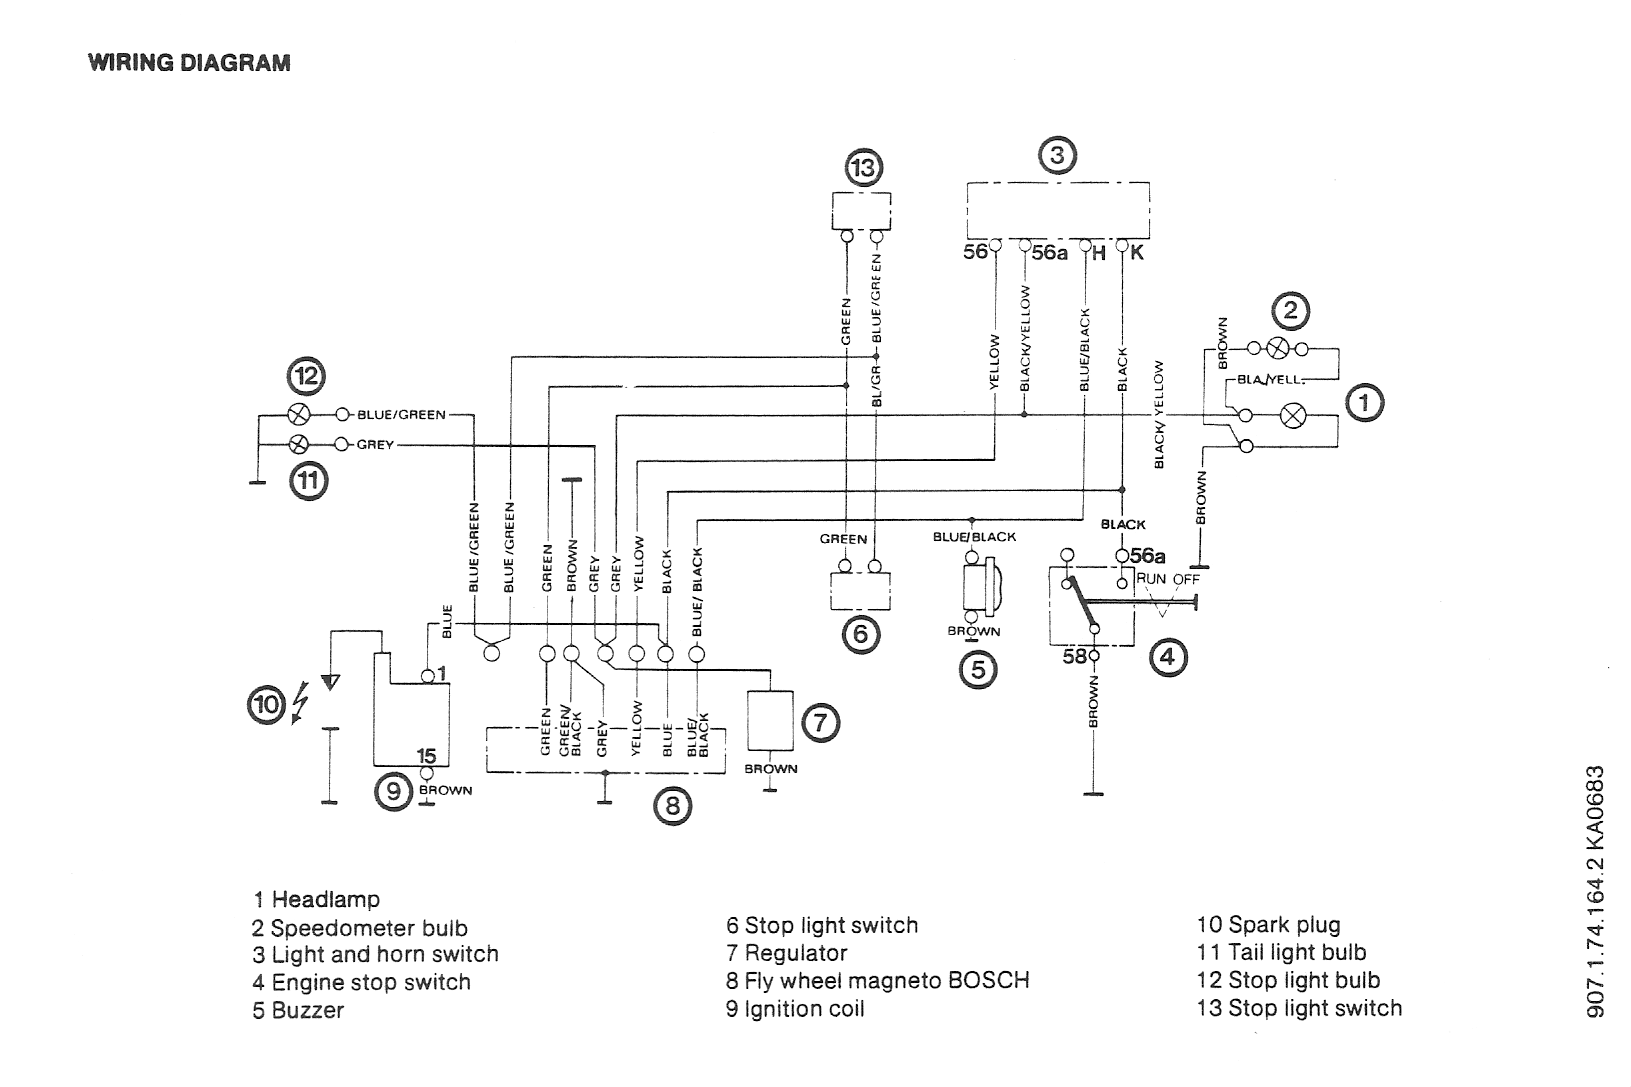 puch wiring diagrams moped wiki rh mopedarmy com Puch Moped Lights Puch Moped Parts